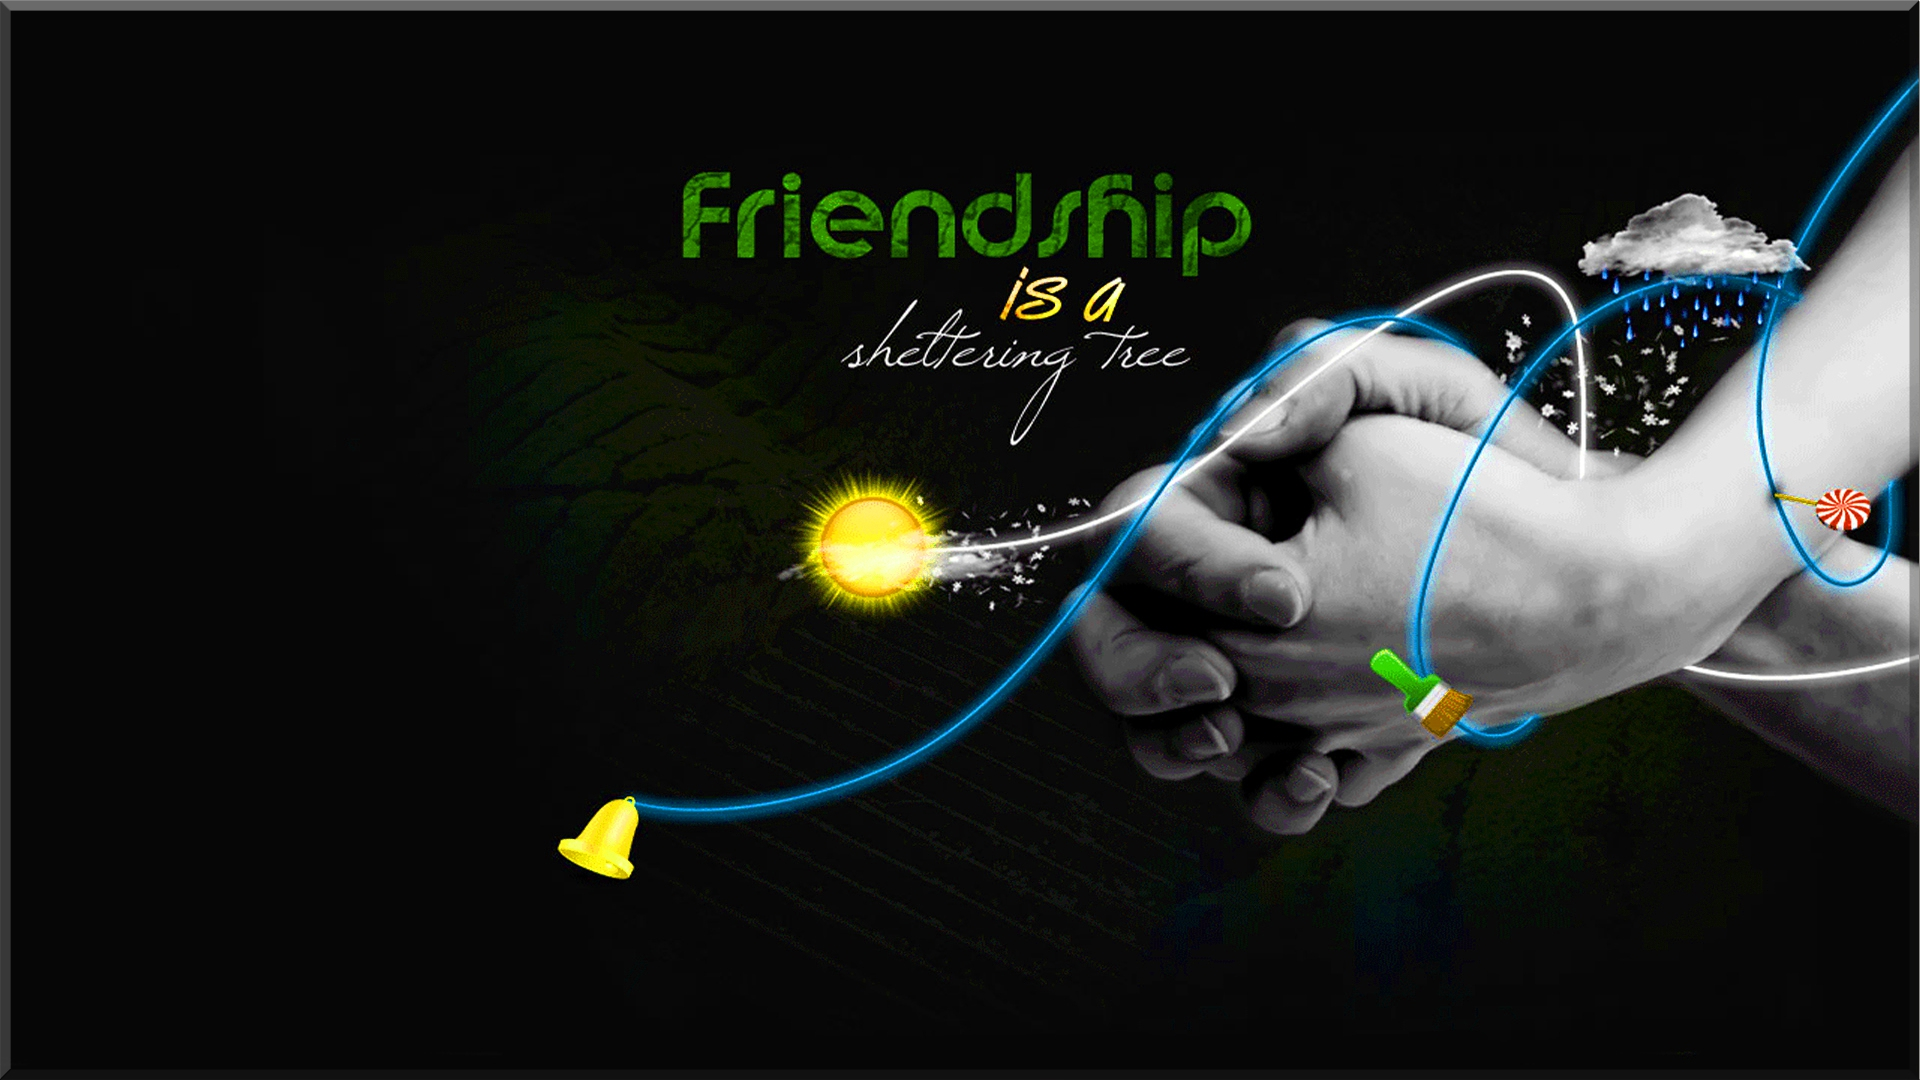 Friendship Quotes HD Wallpapers Wallpaper High Definition 1920x1080